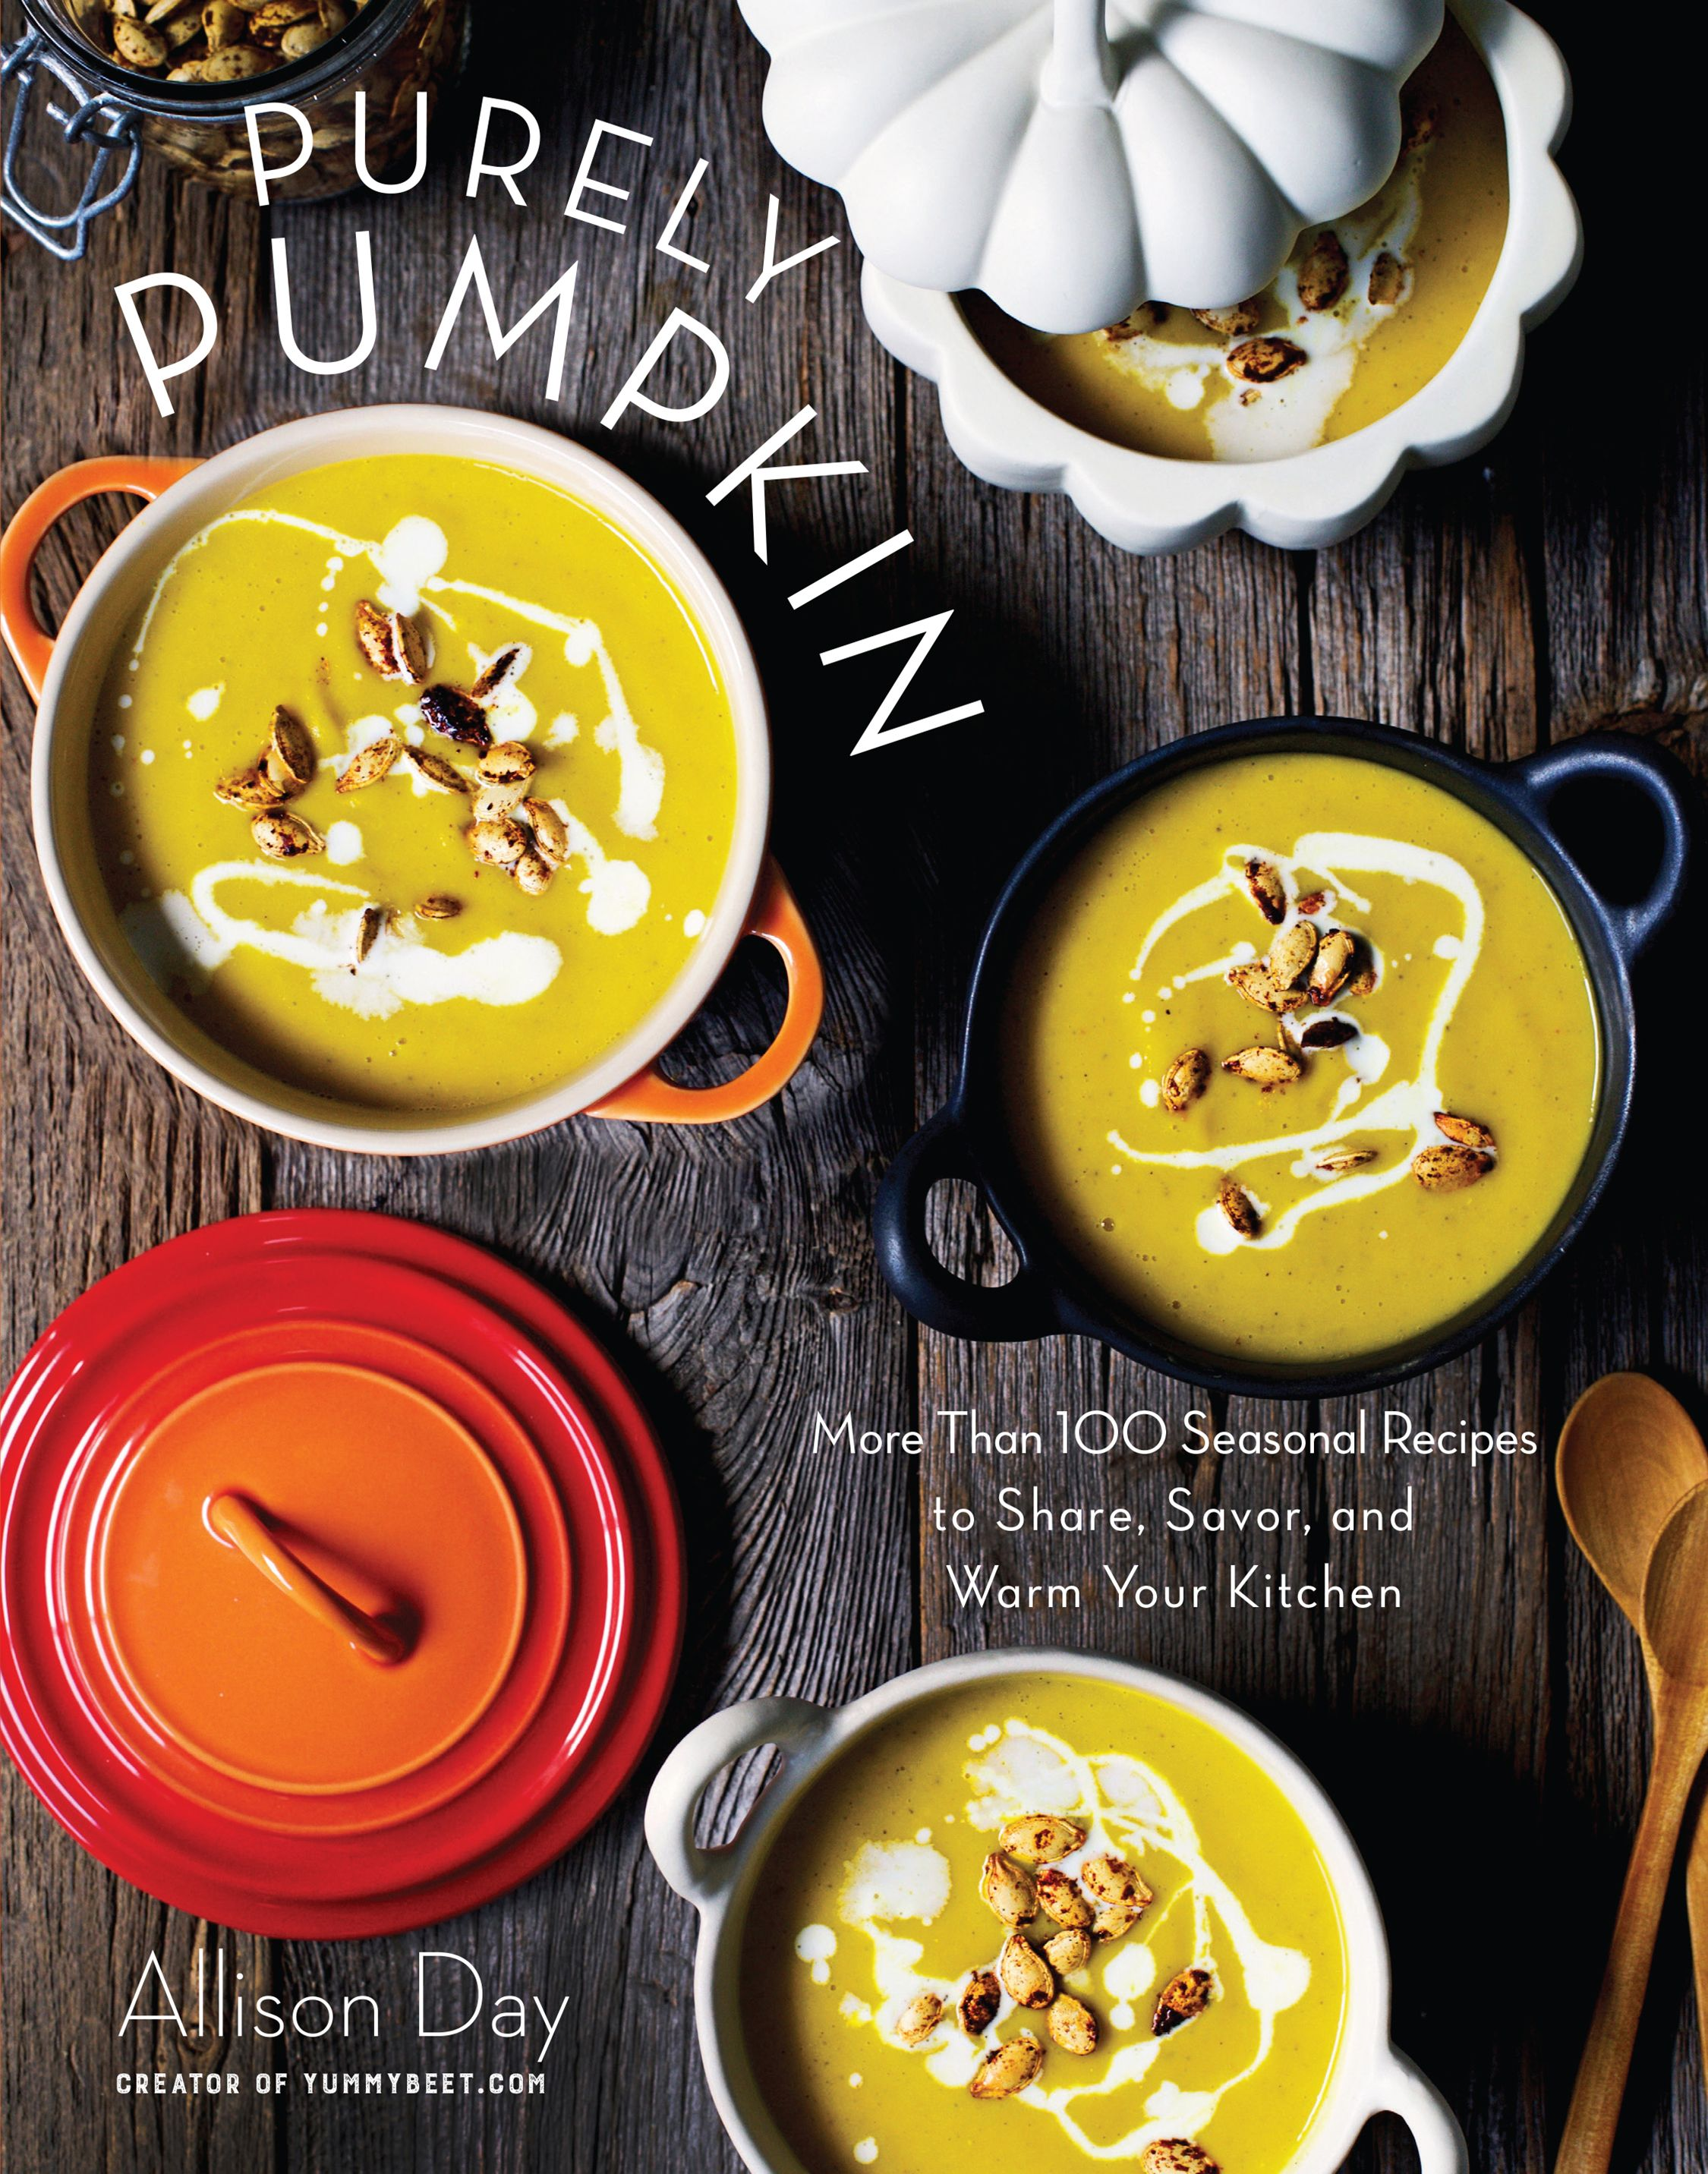 PURELY PUMPKIN: MORE THAN 100 SEASONAL RECIPES TO SHARE, SAVOR, AND WARM YOUR KITCHEN by Allison Day